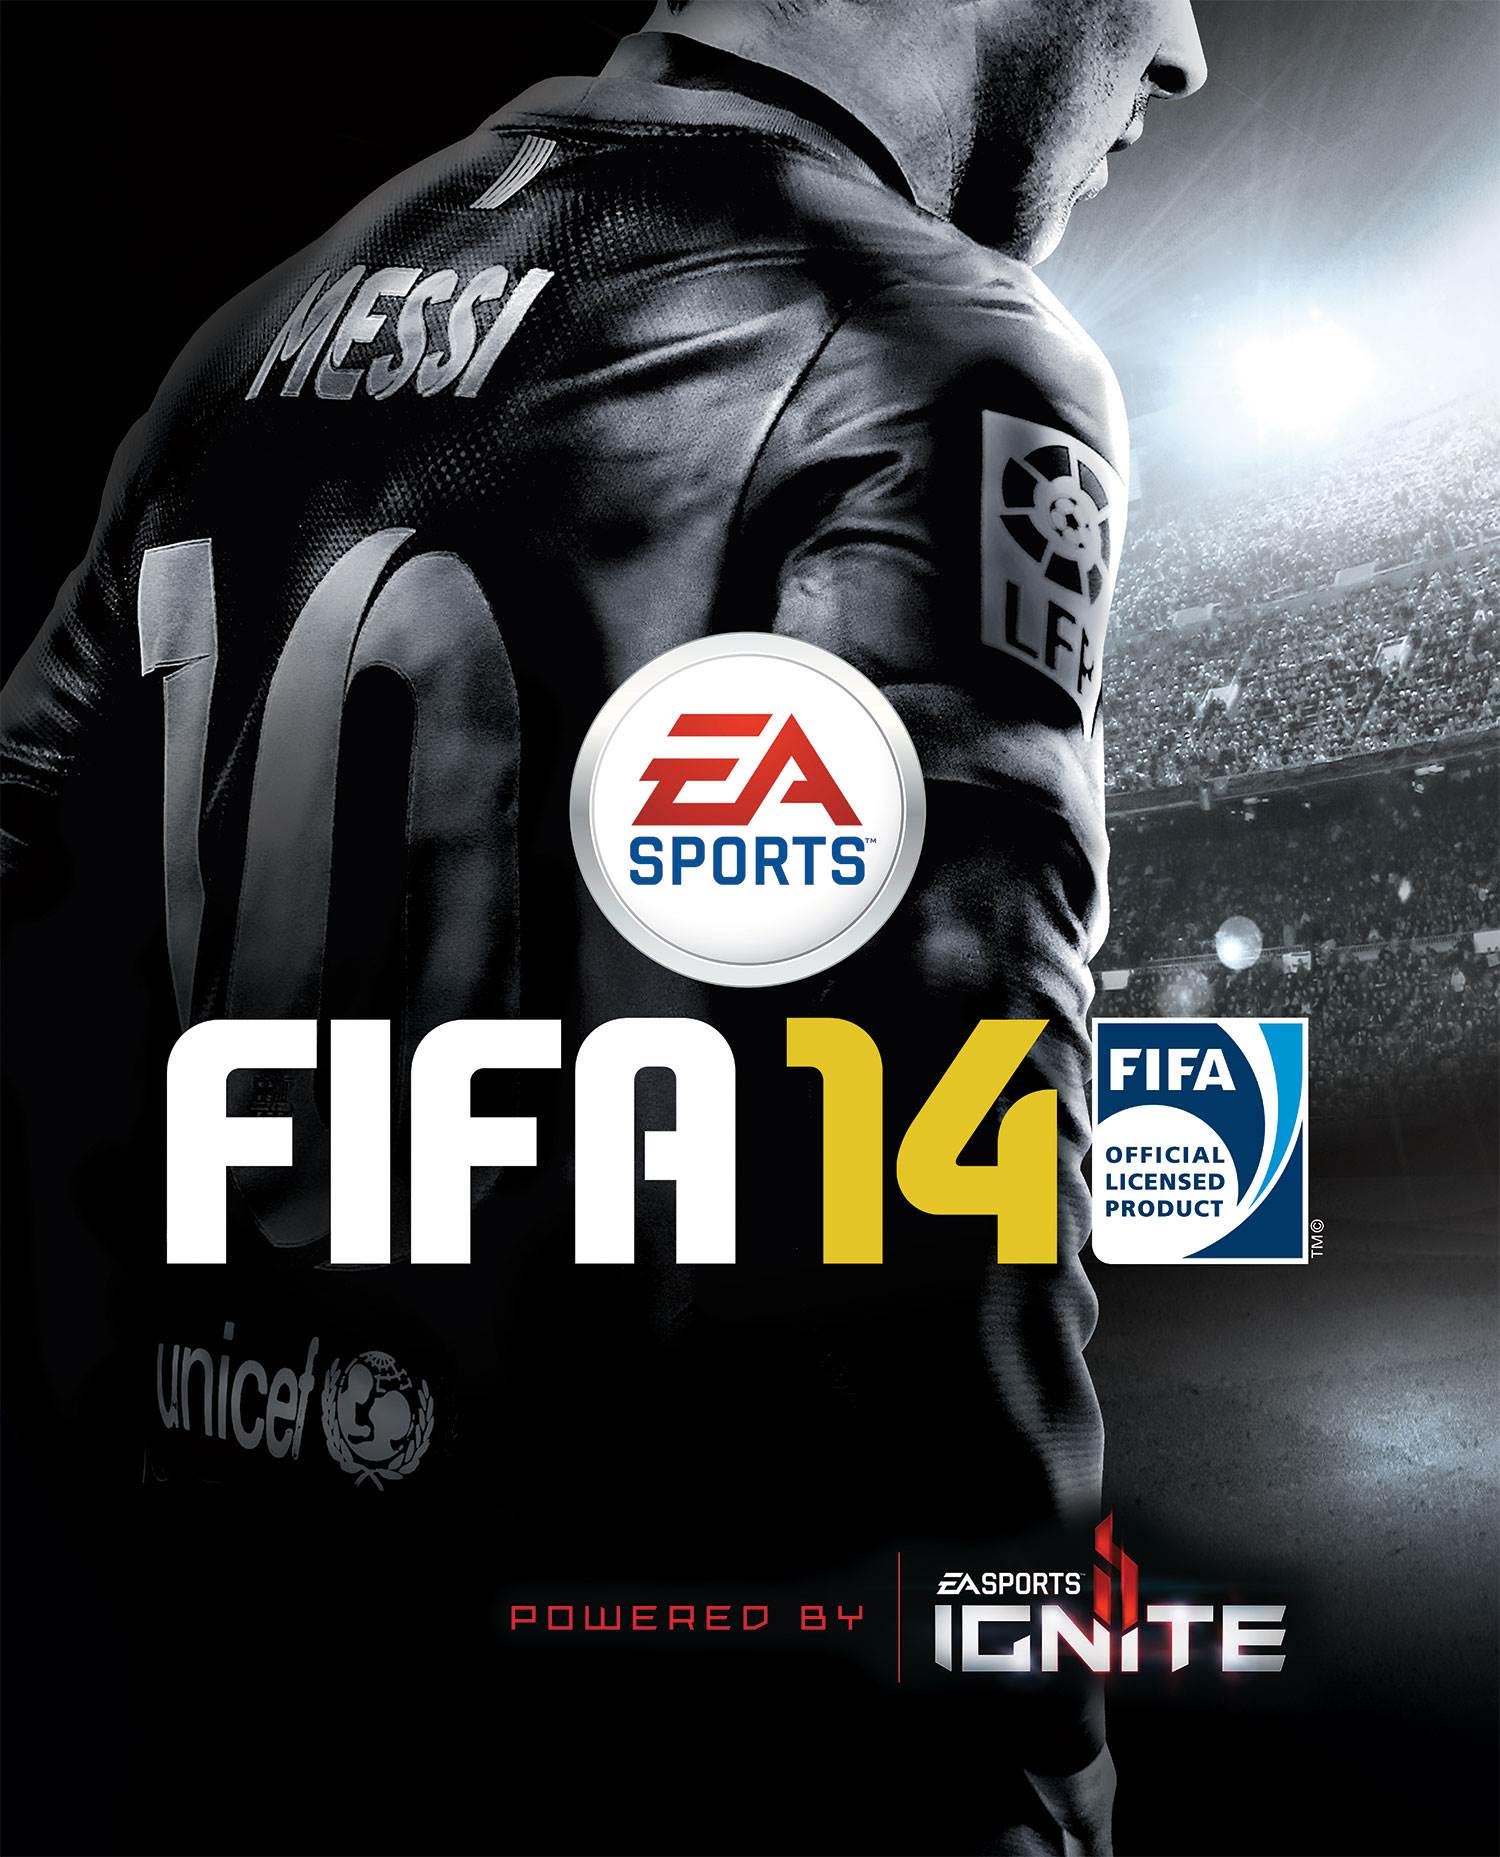 Fifa 14 wallpapers official and high resolution fifa 14 images fifa 14 wallpapers official and high resolution fifa 14 images voltagebd Images